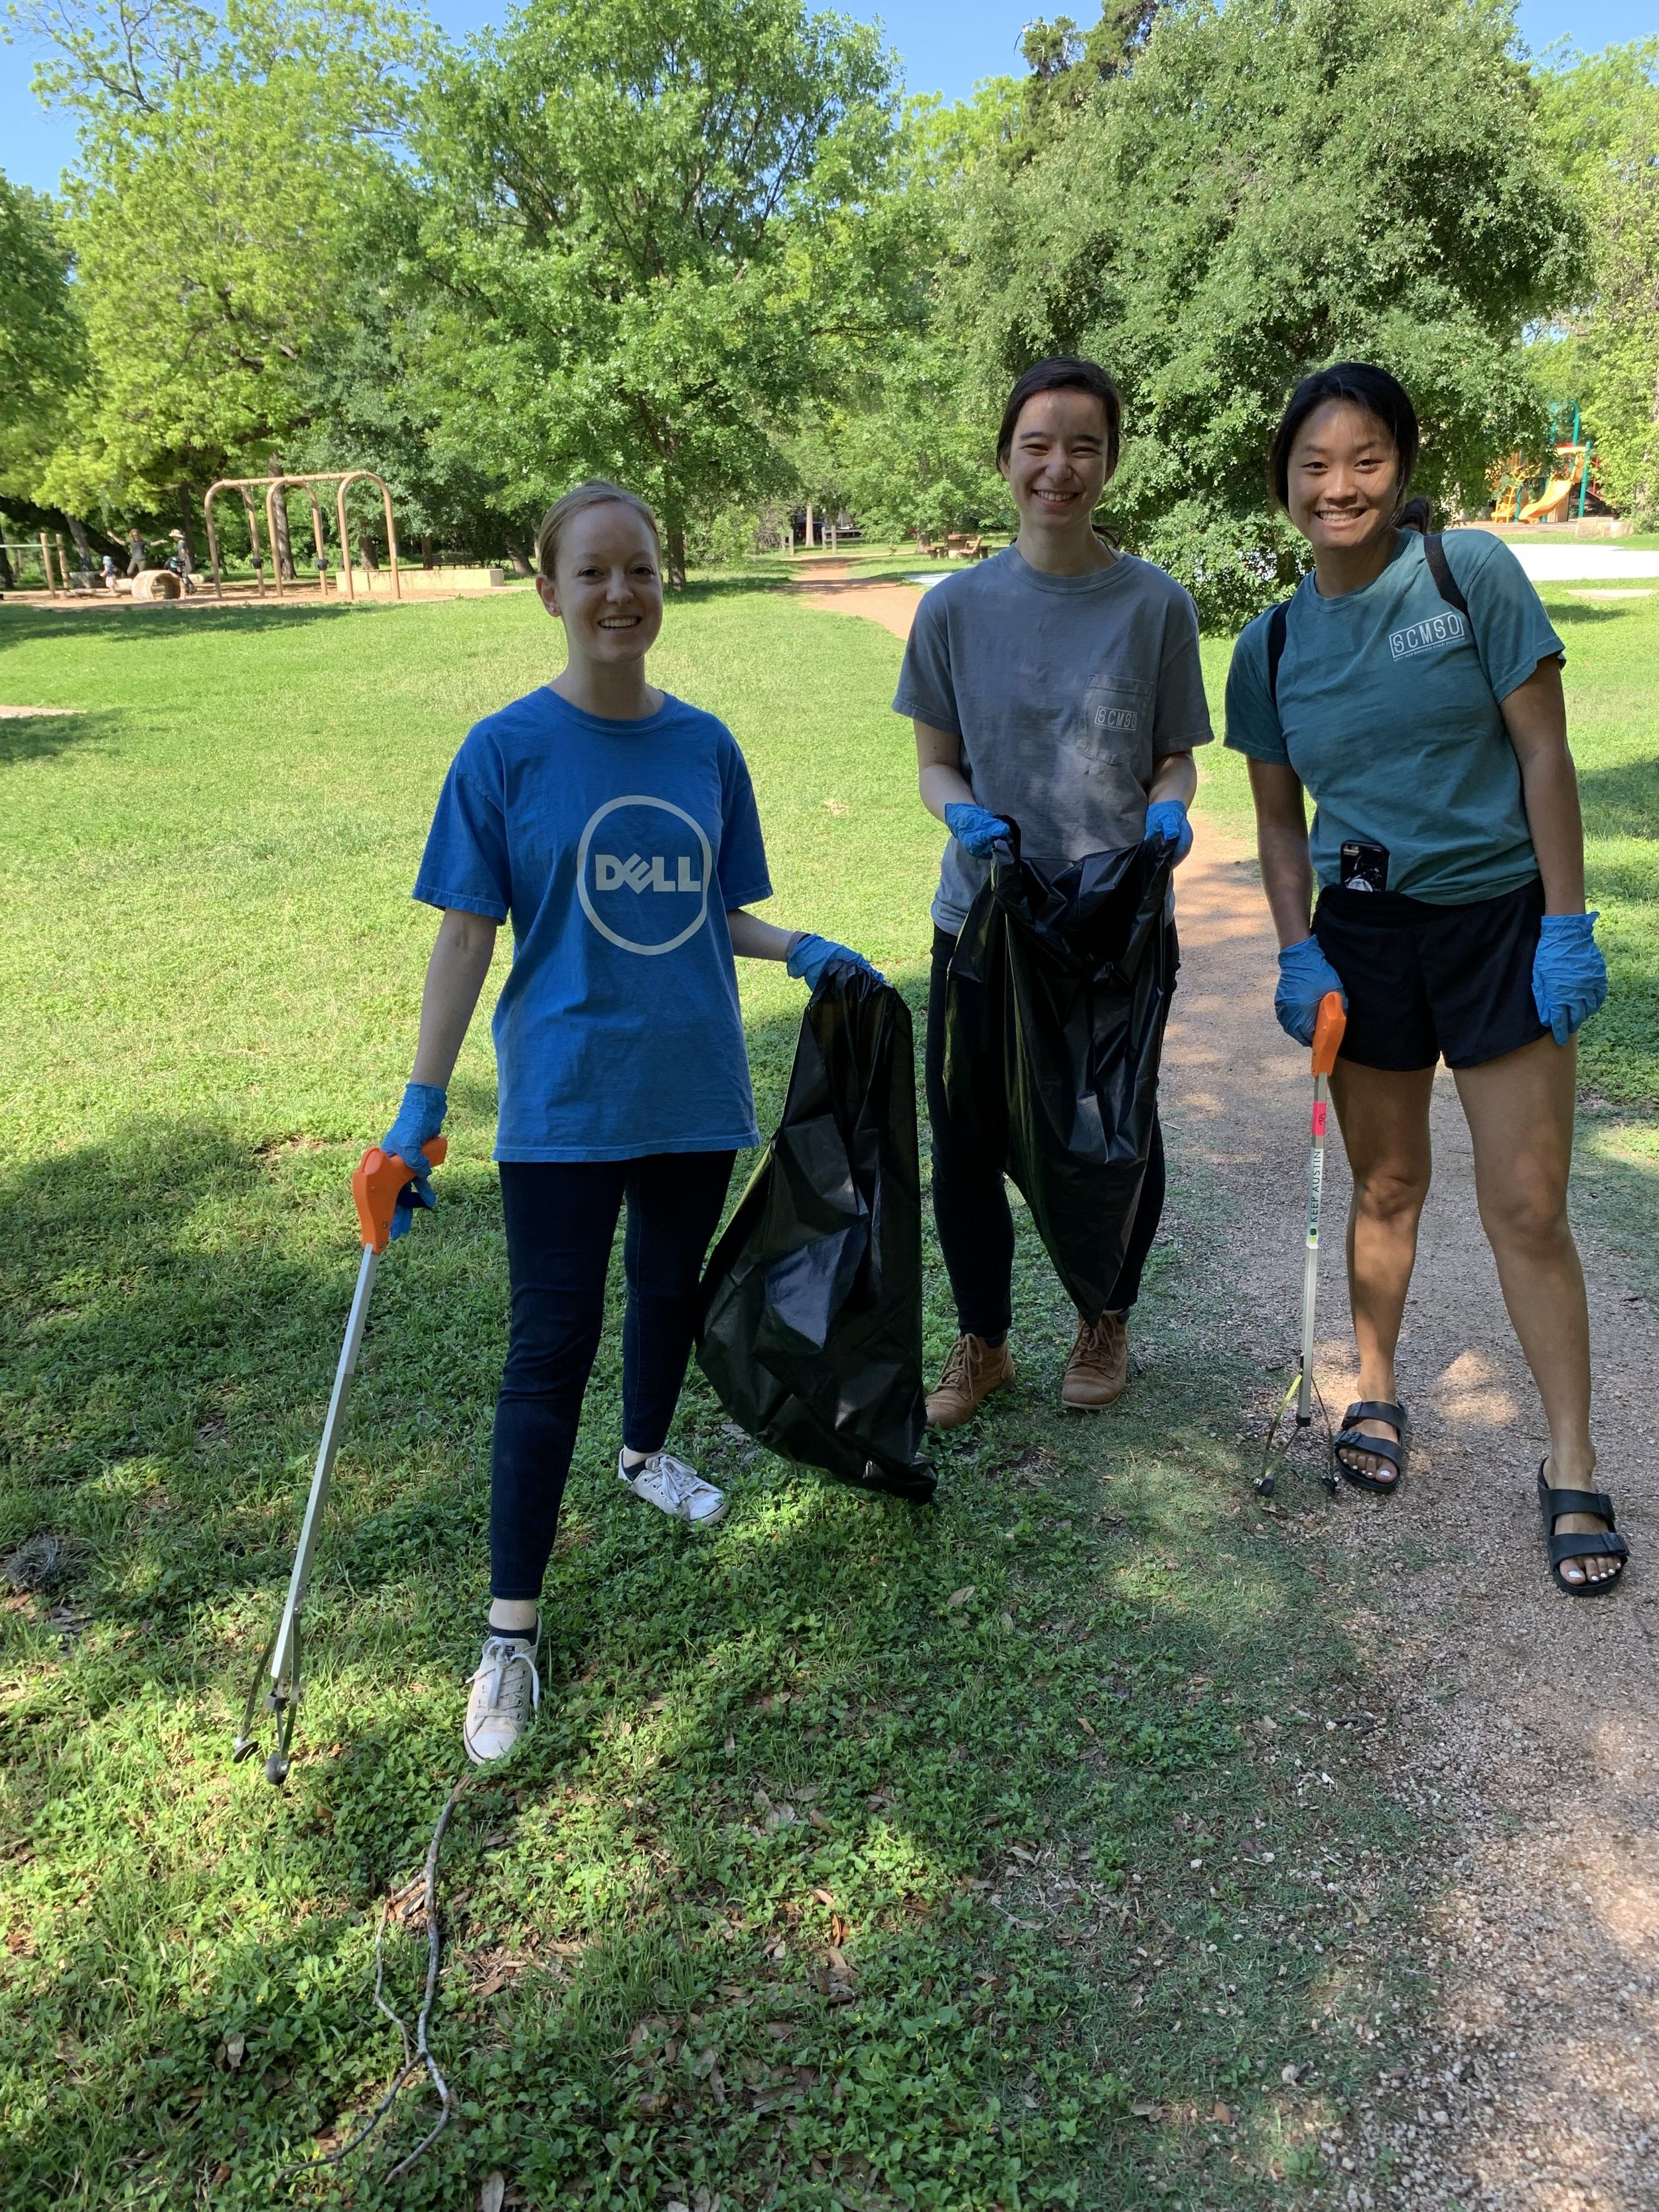 Volunteer Event with Dell. Spring 2019